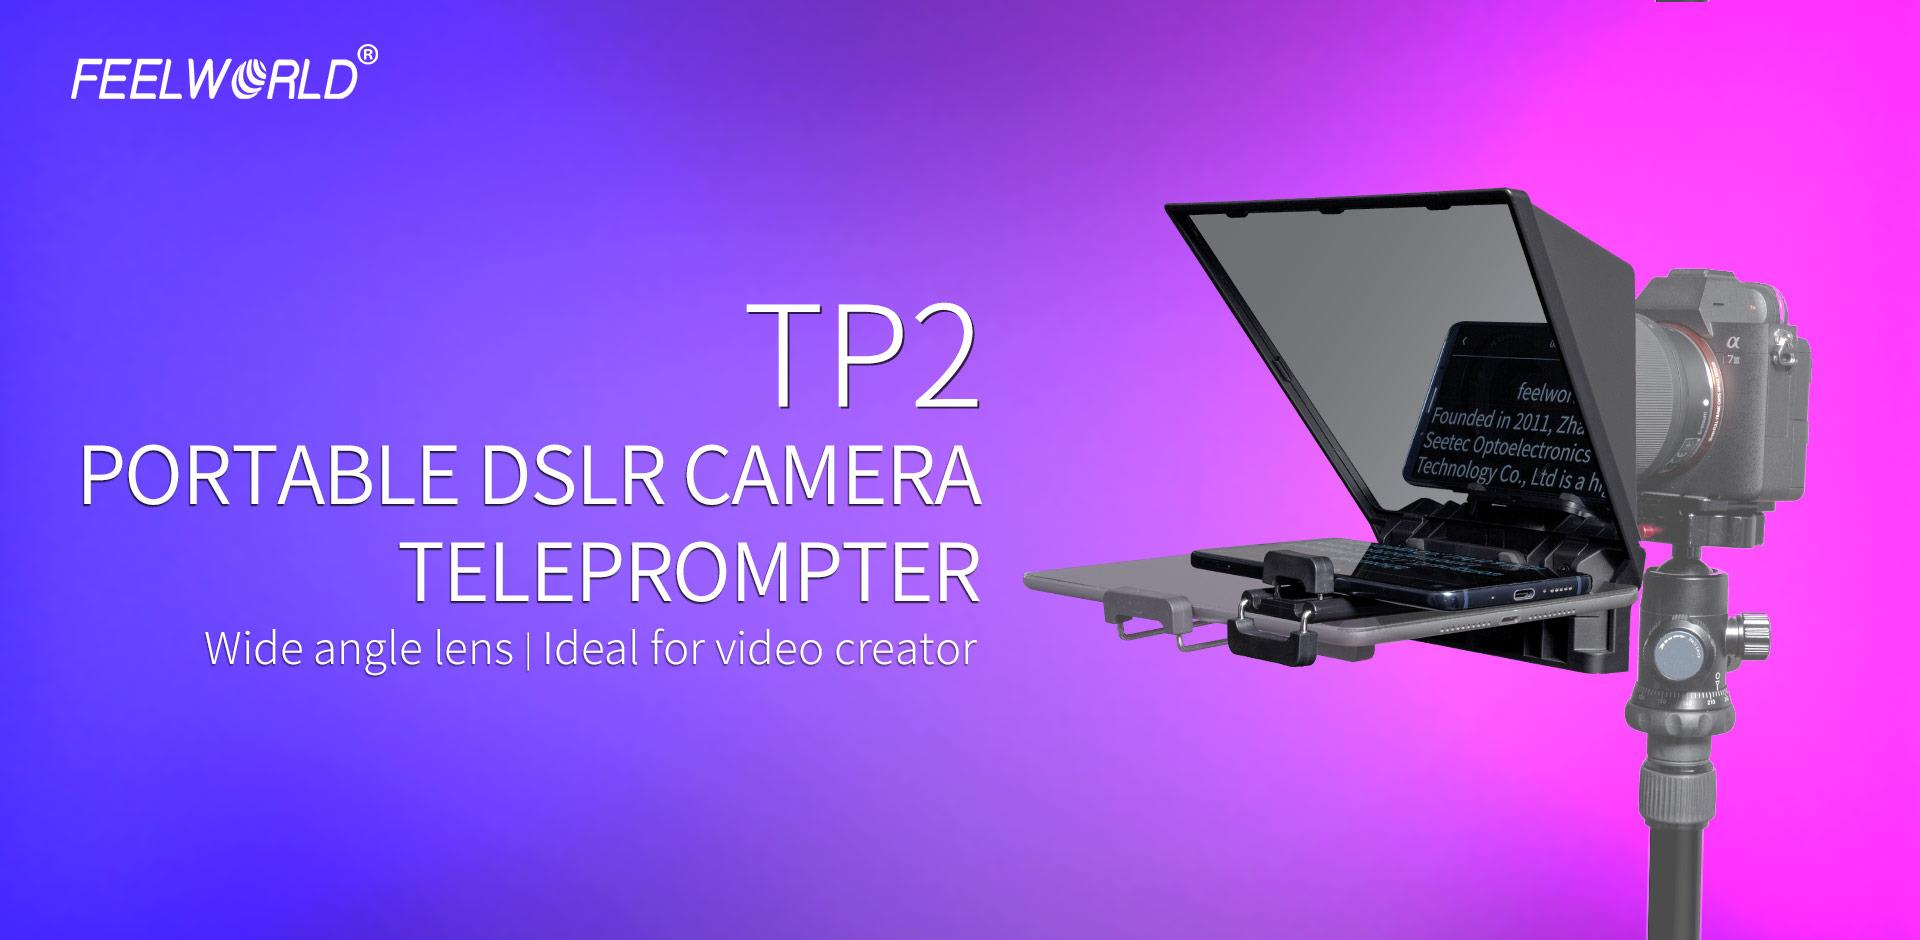 dslr camera teleprompter